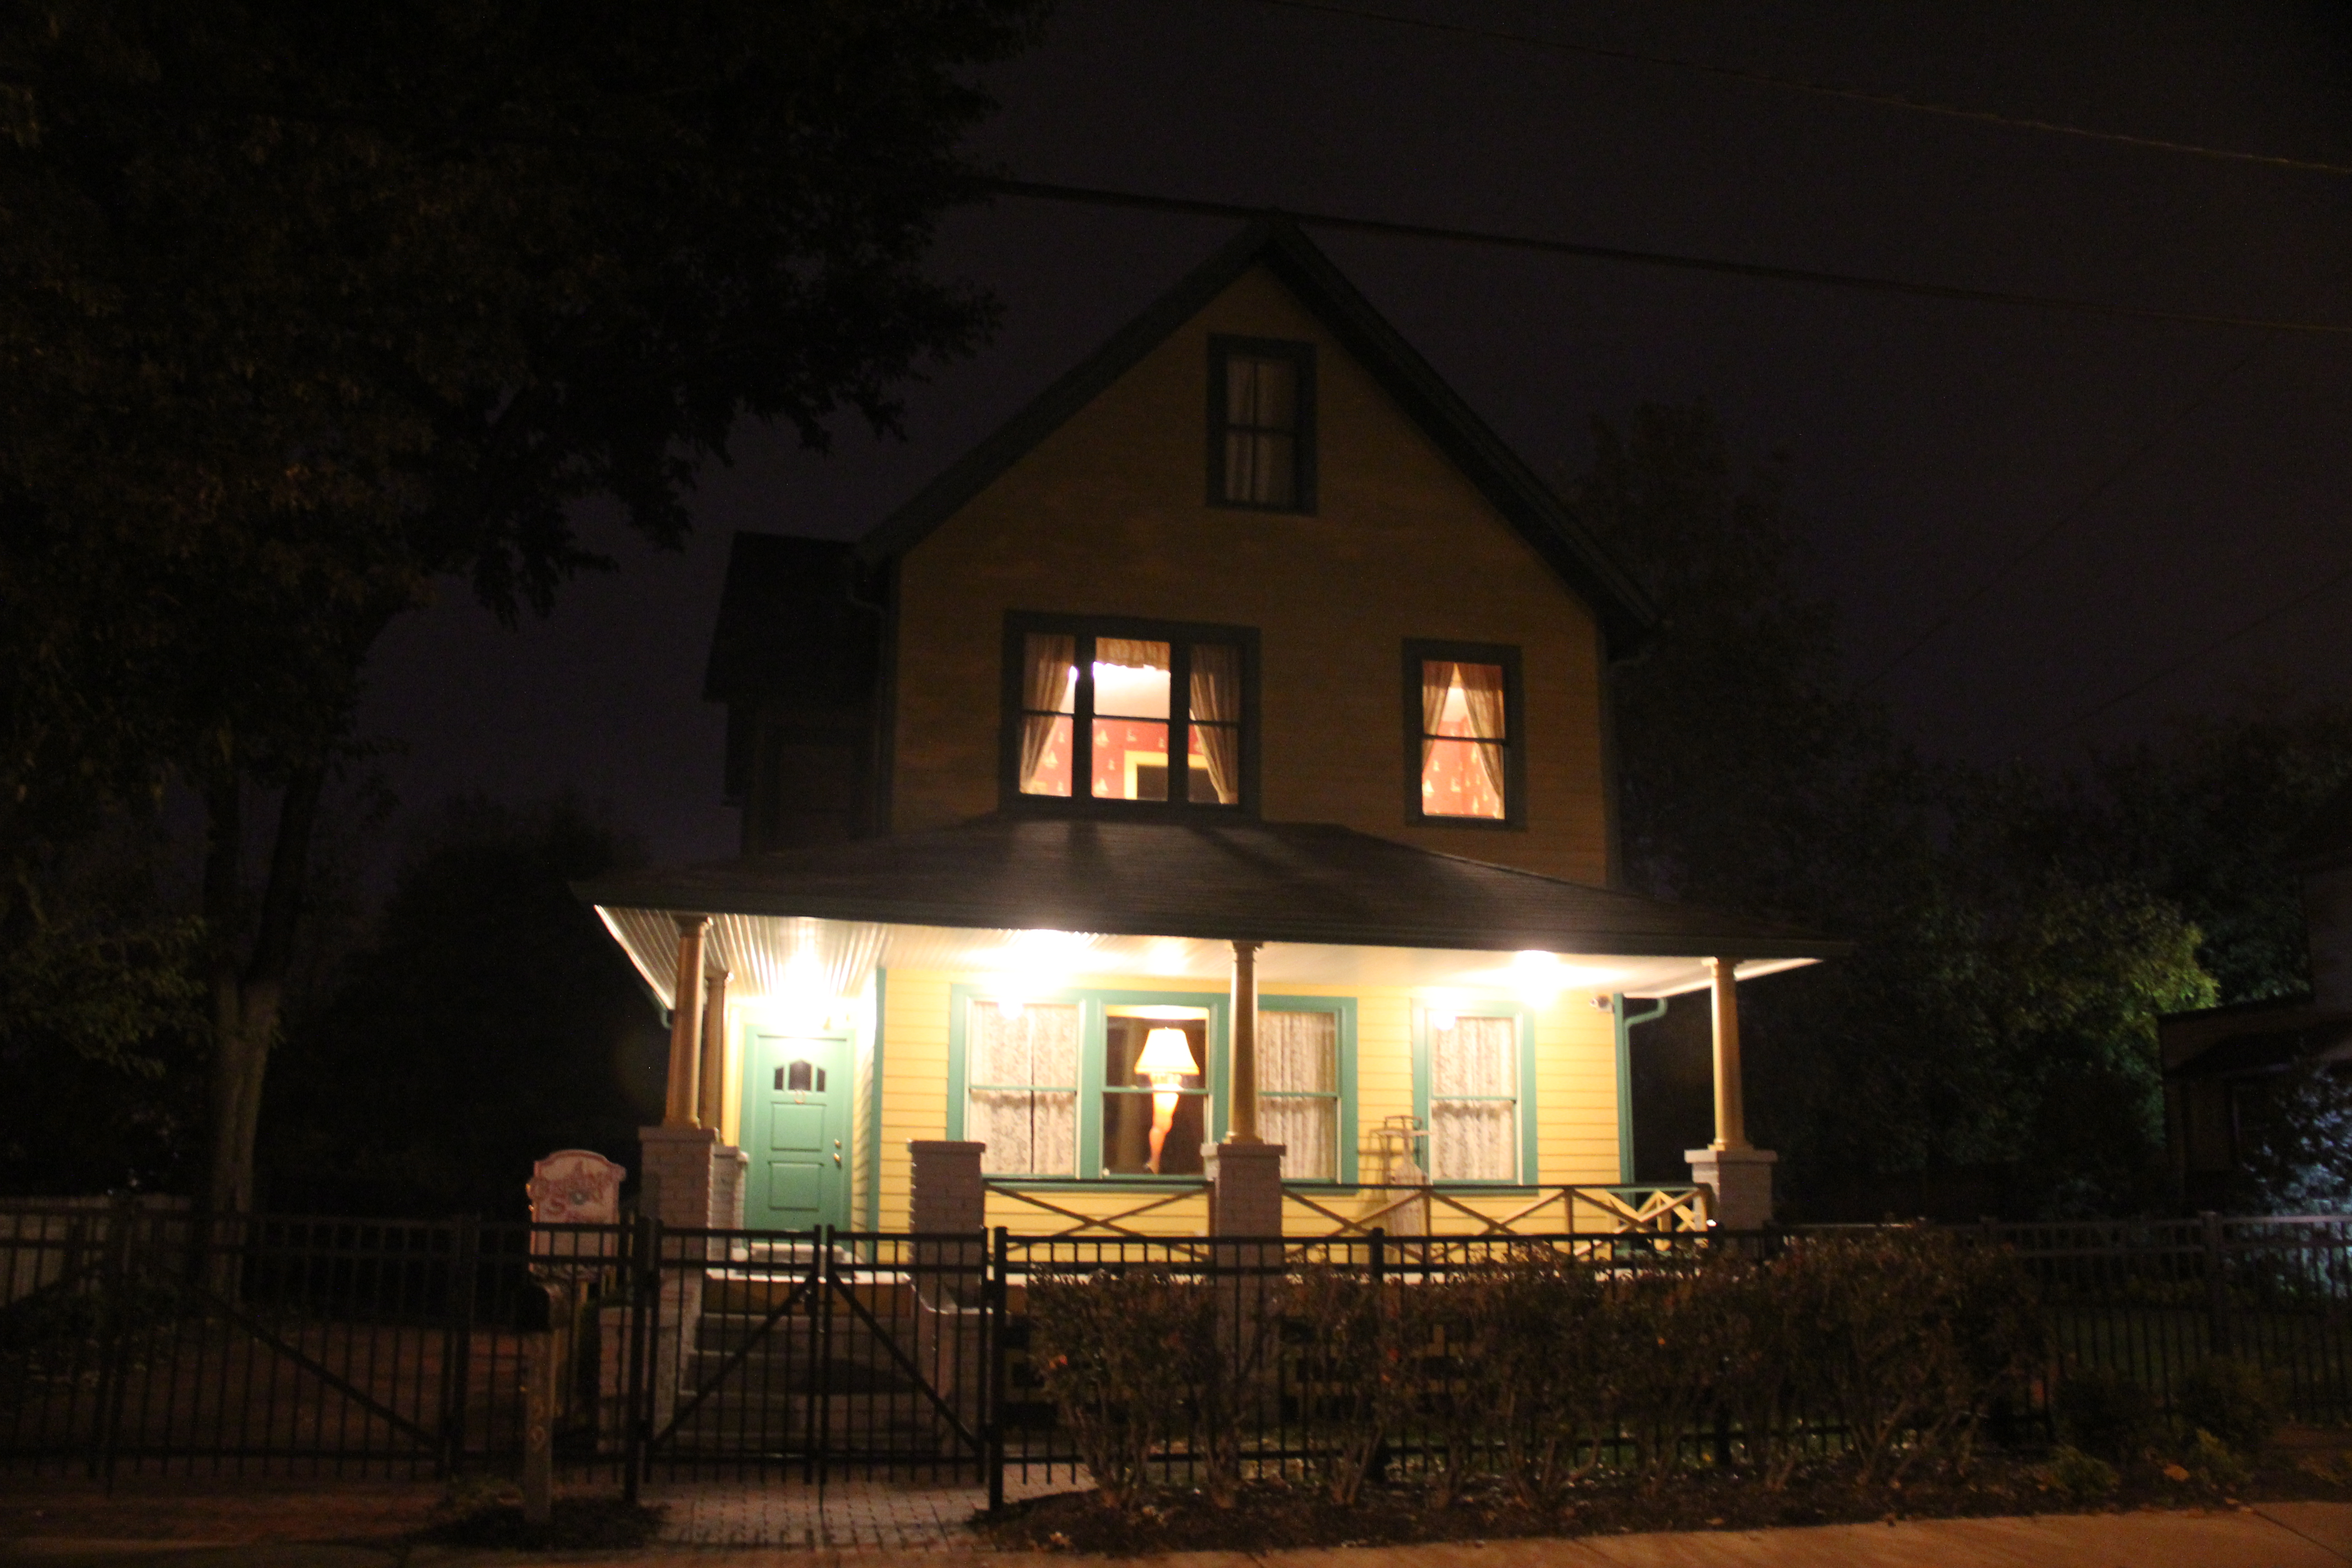 filea christmas story house cleveland at night 14996961813jpg